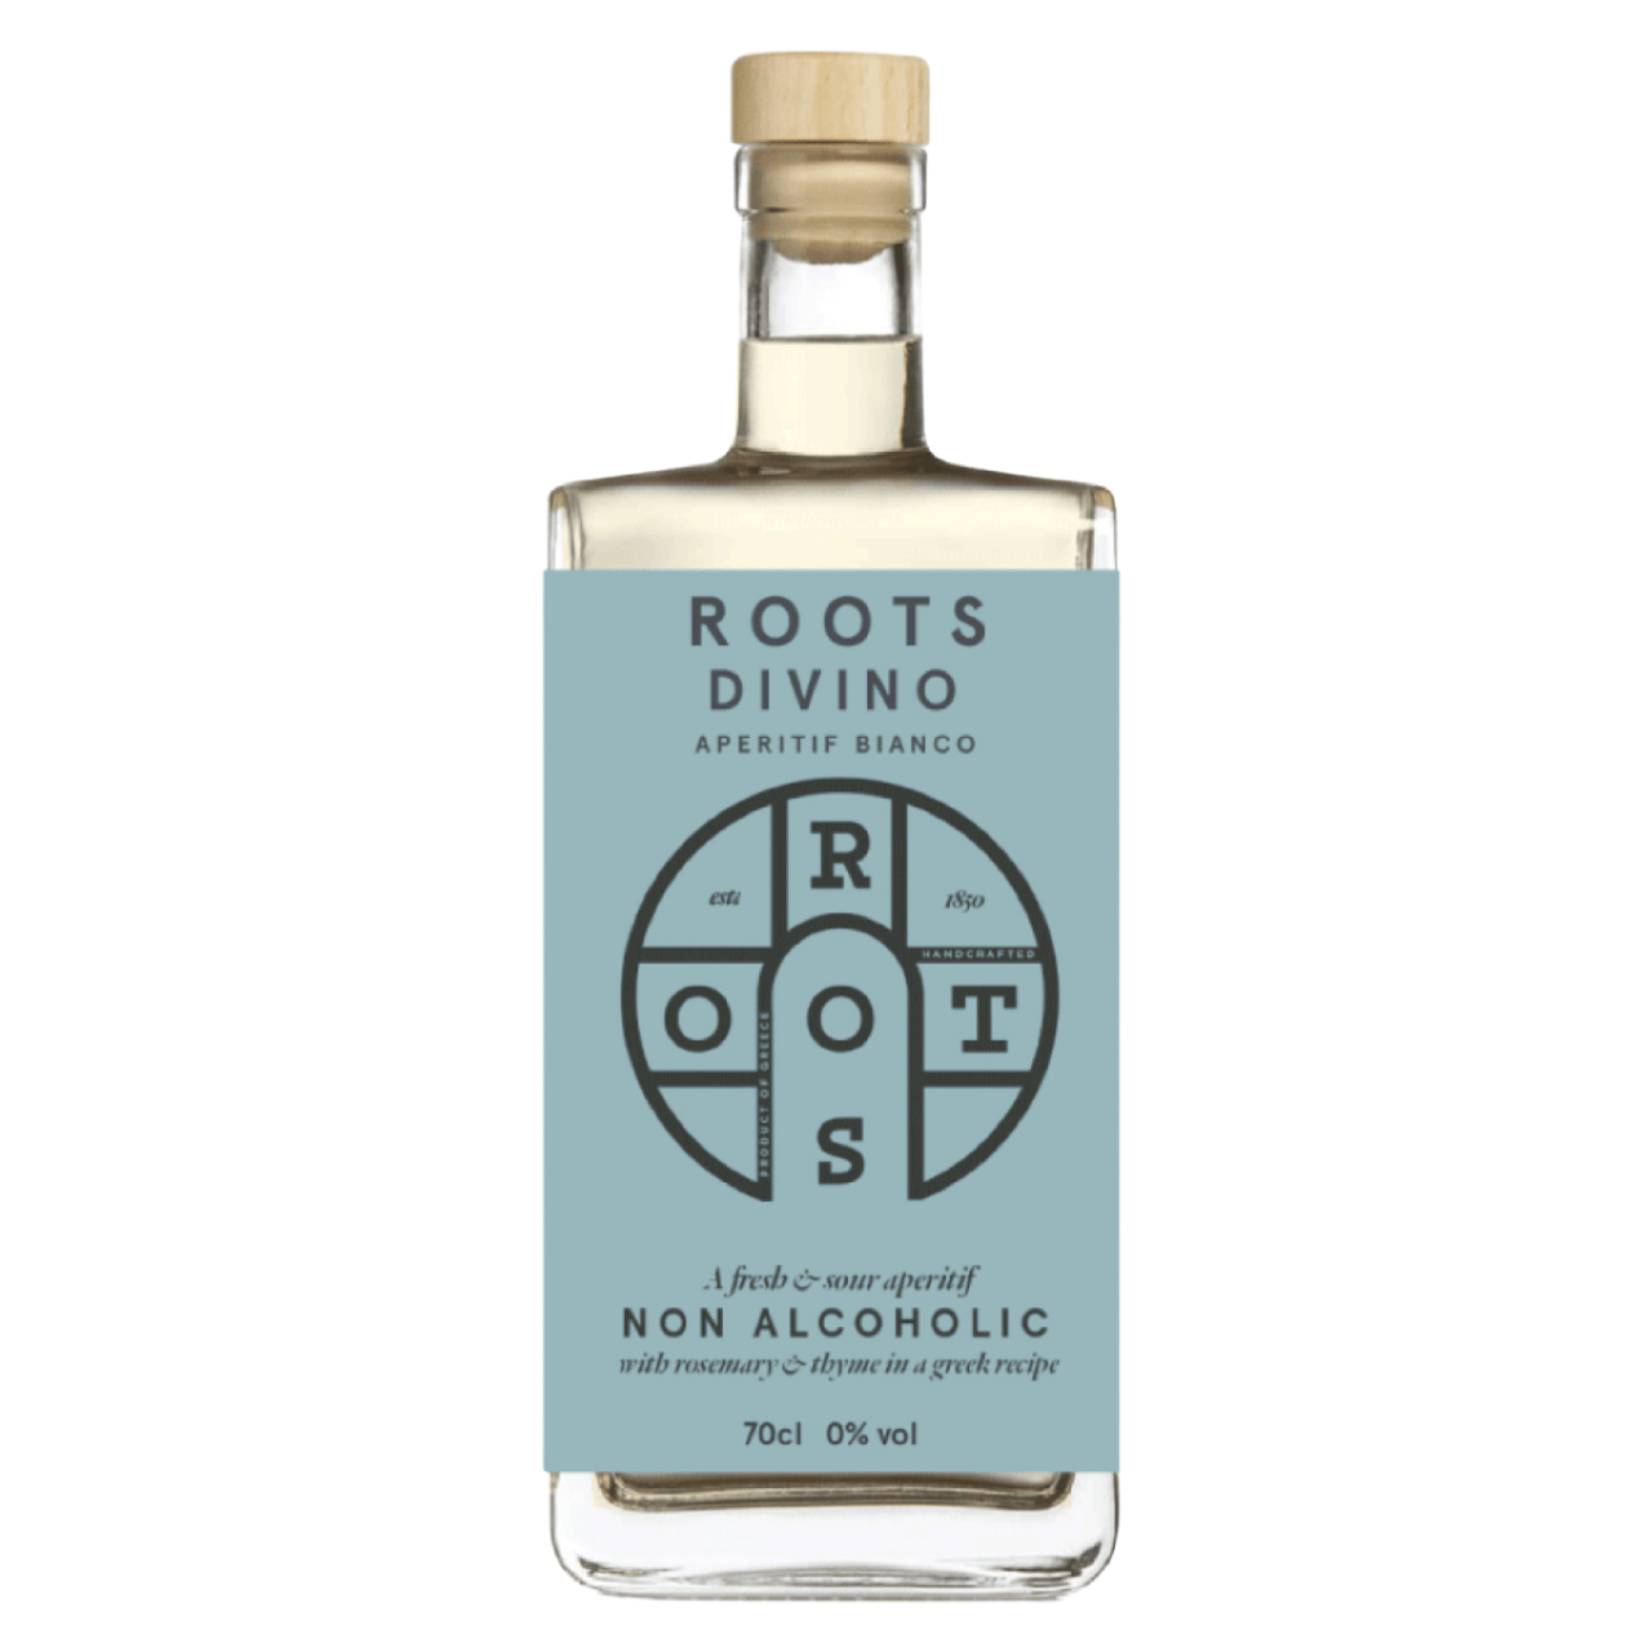 Roots Divino Non Alcoholic Vermouth Bianco